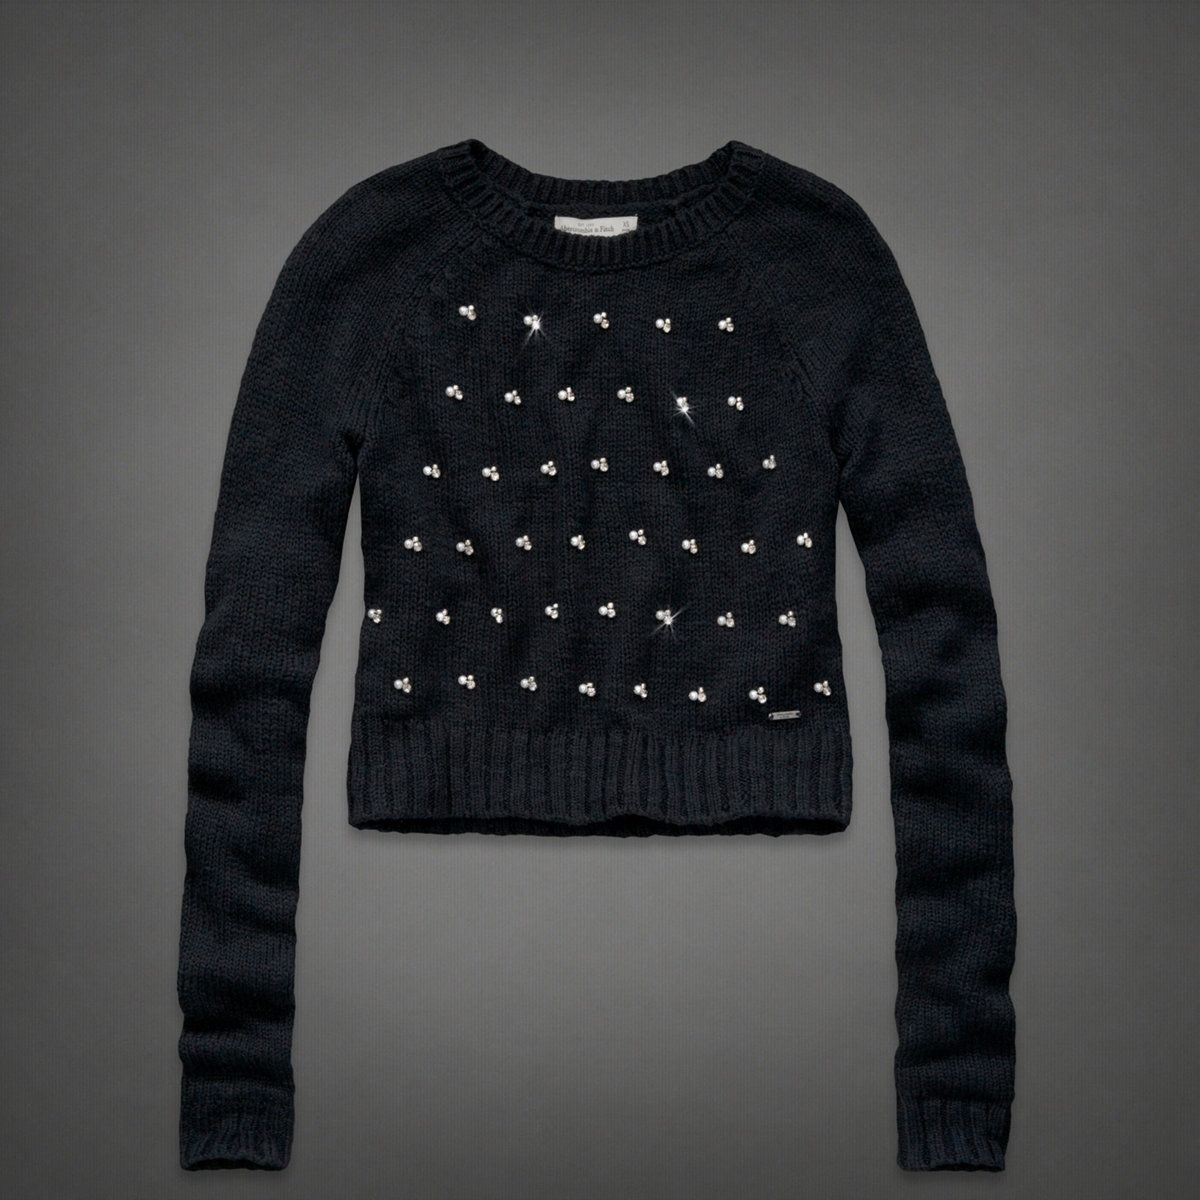 Abercrombie Fitch Accessories Abercrombie Fitch Womens: Sweaters, Sweaters For Women, Women